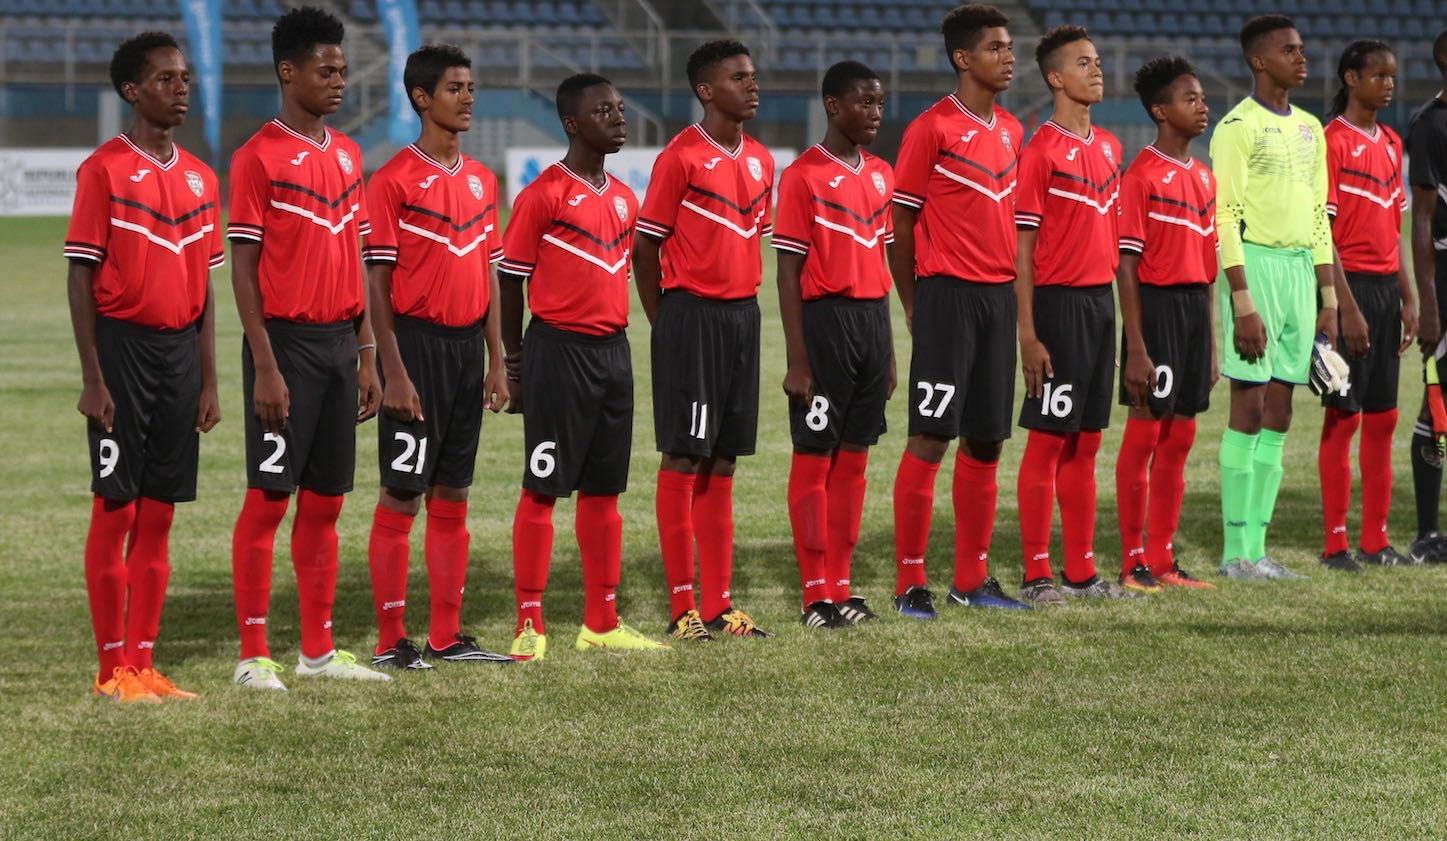 U-15 team to face Man City, DC United, Houston Dynamo among other top friendlies as preparations continues